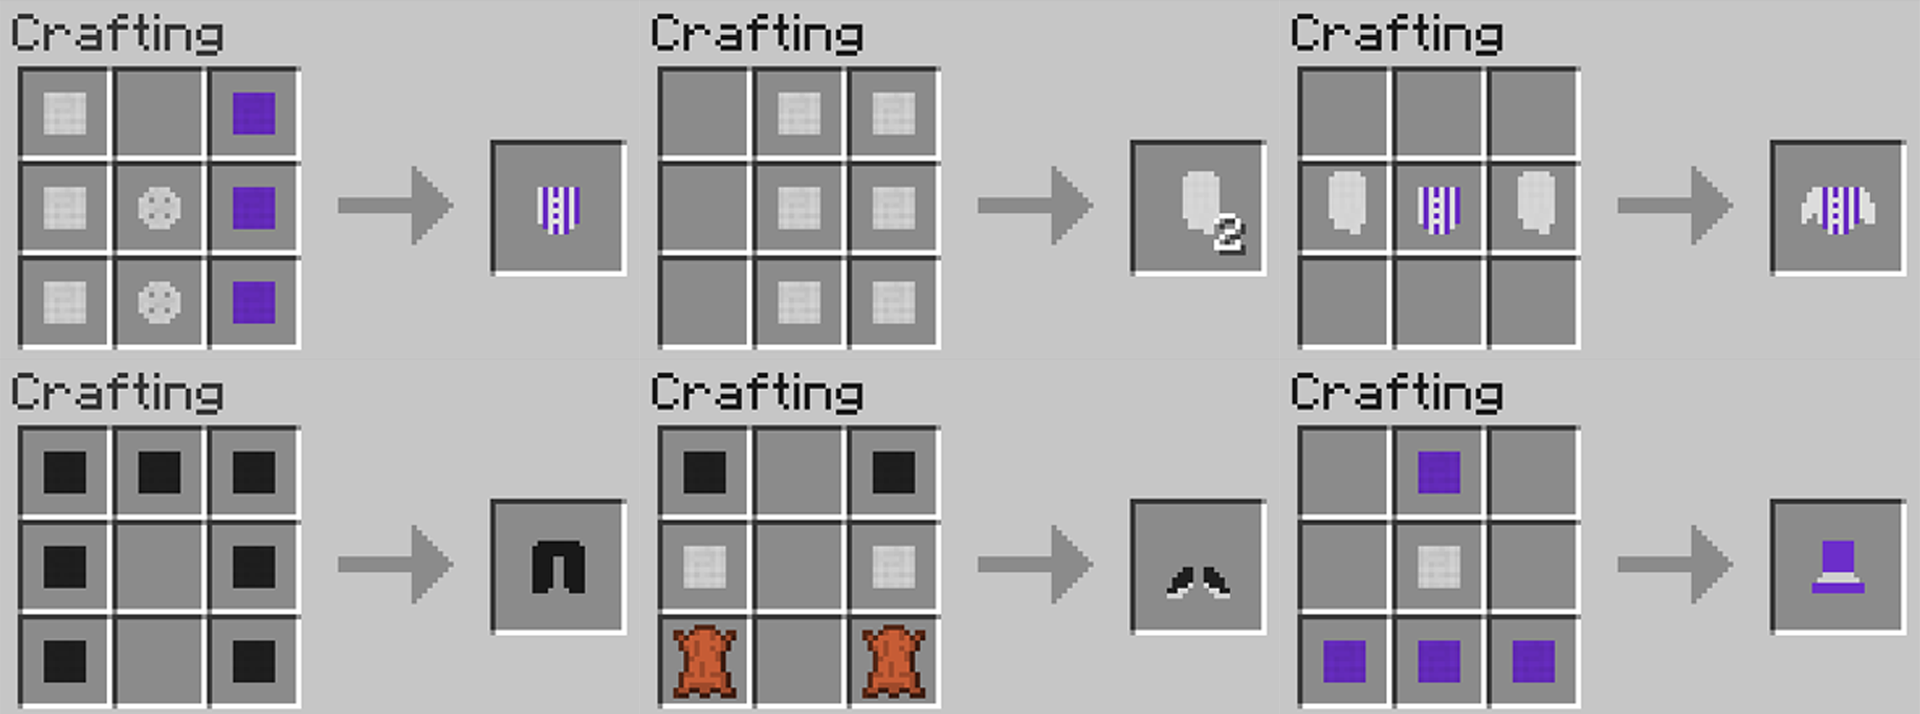 minecraft crafting. Recipes Minecraft Crafting